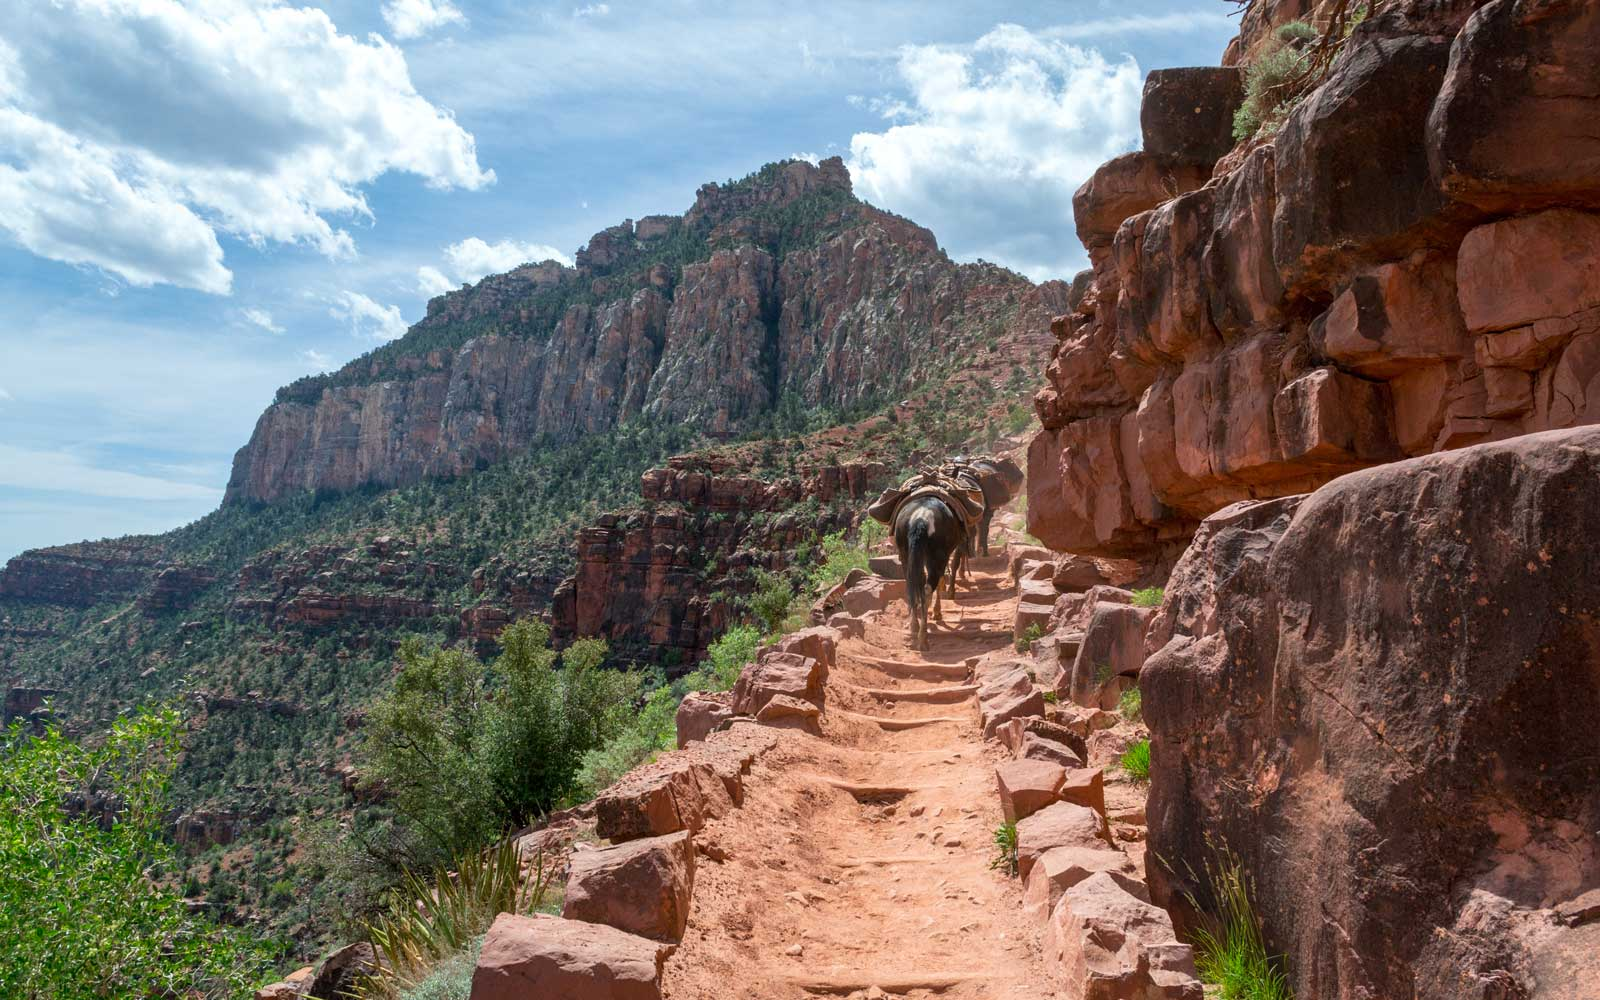 Ride a donkey in the Grand Canyon